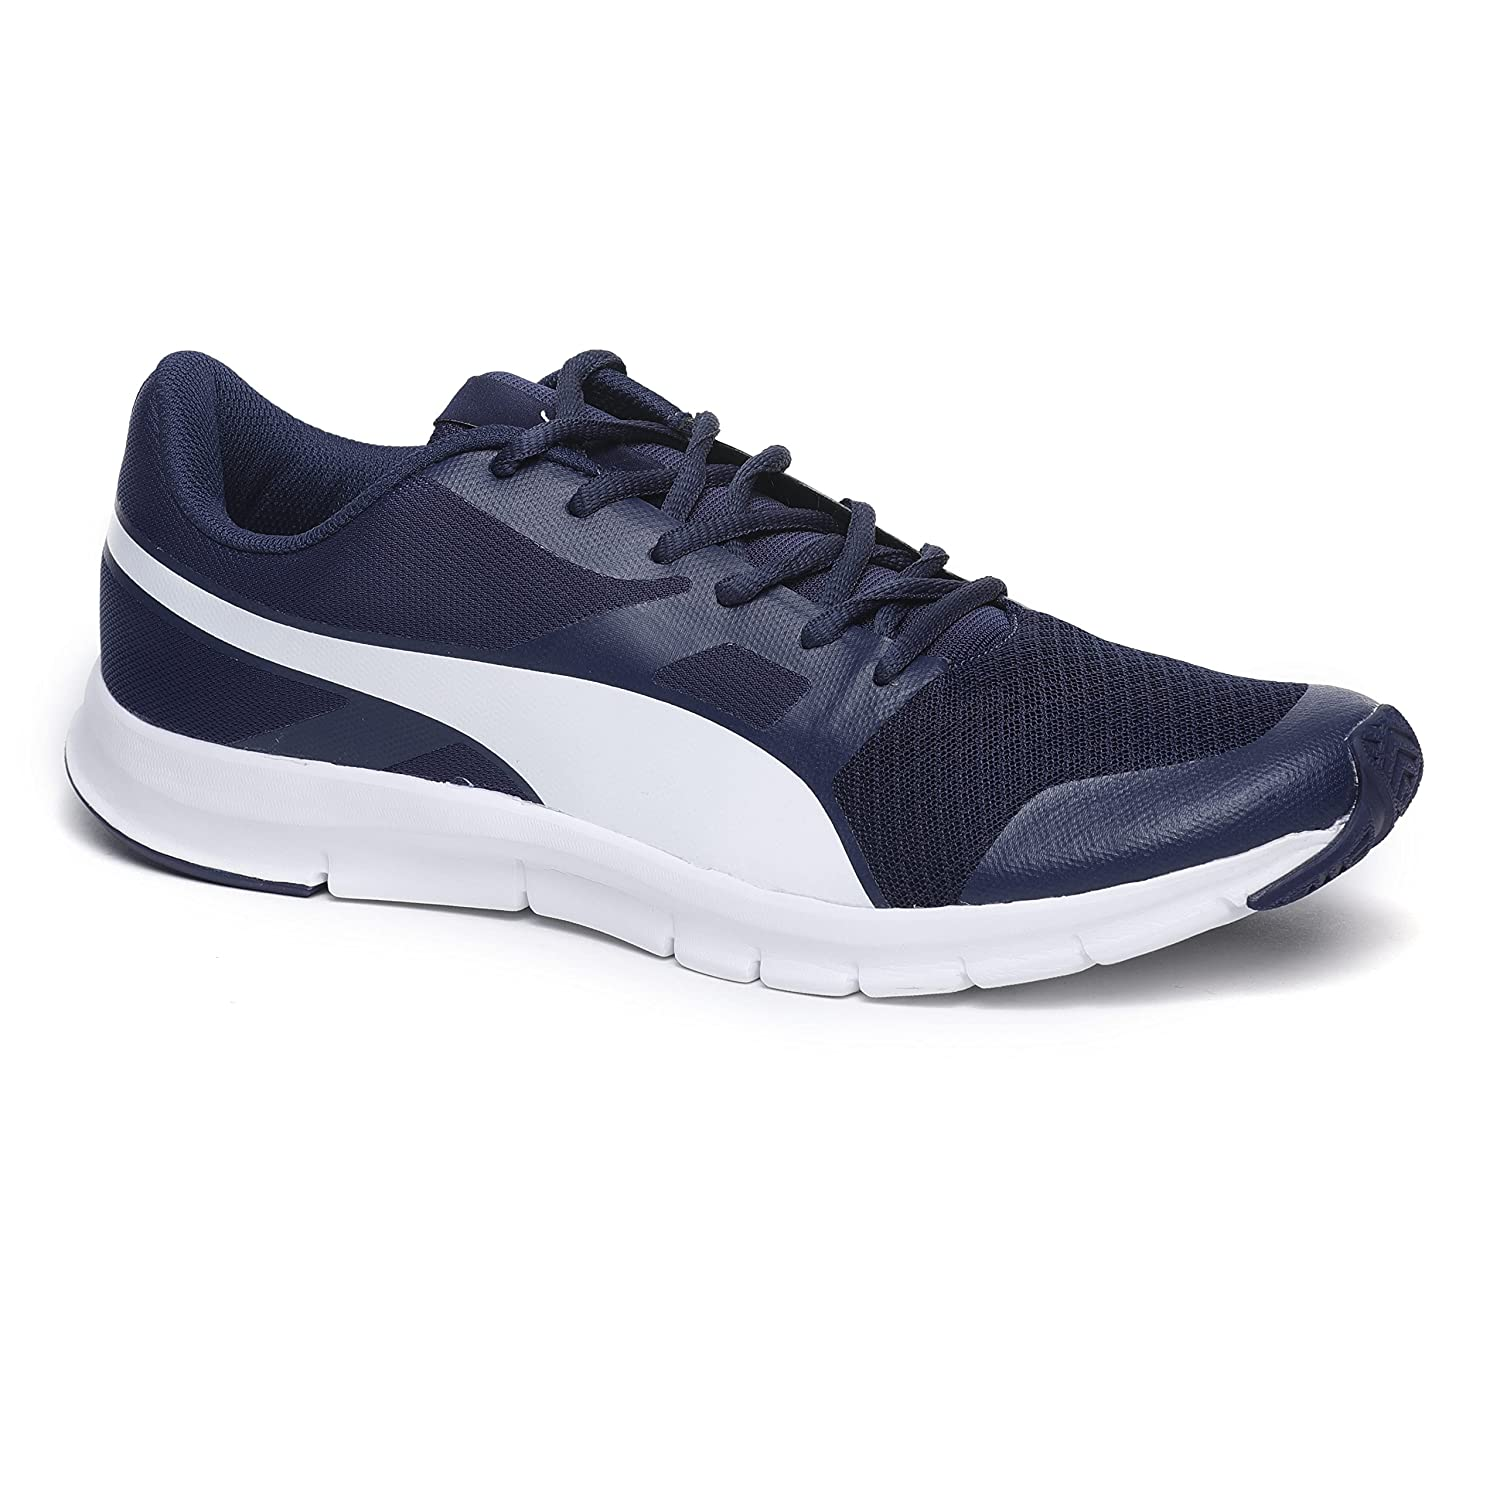 bd7ed618d4f Puma Men s Flexracer Dp Running Shoes  Buy Online at Low Prices in India -  Amazon.in